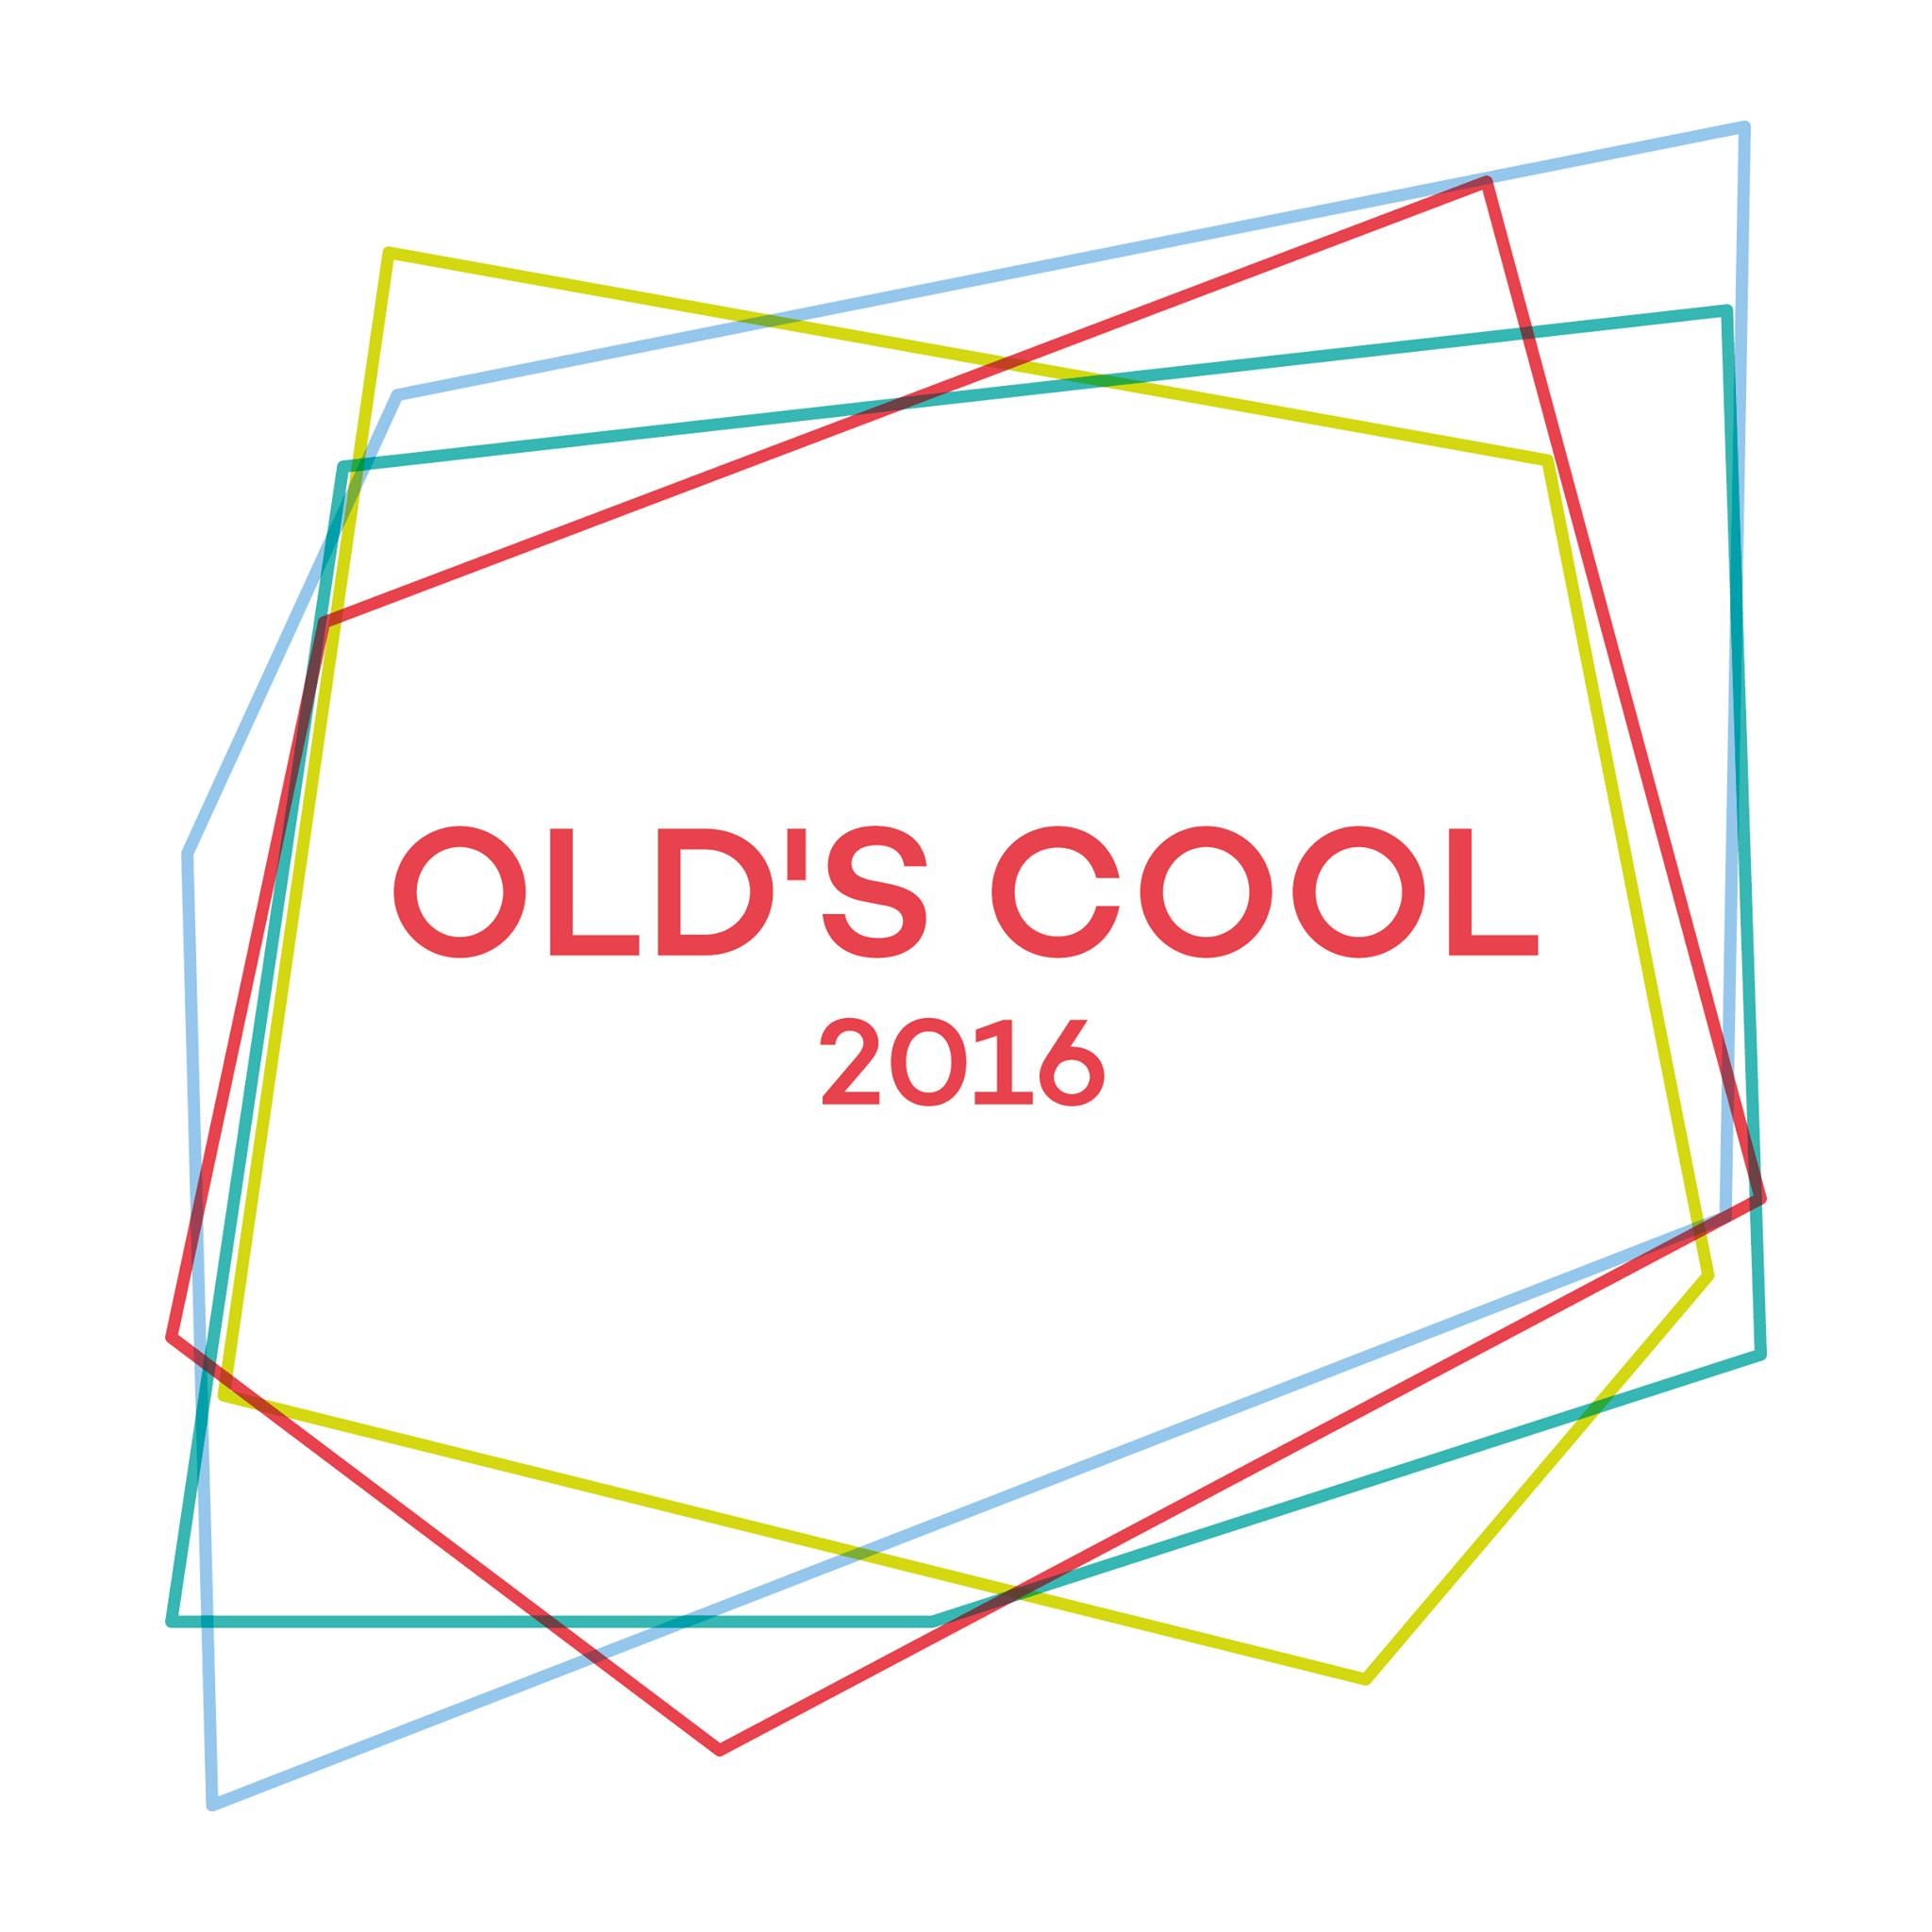 1. 10. – OLD'S COOL ReFestival 2016